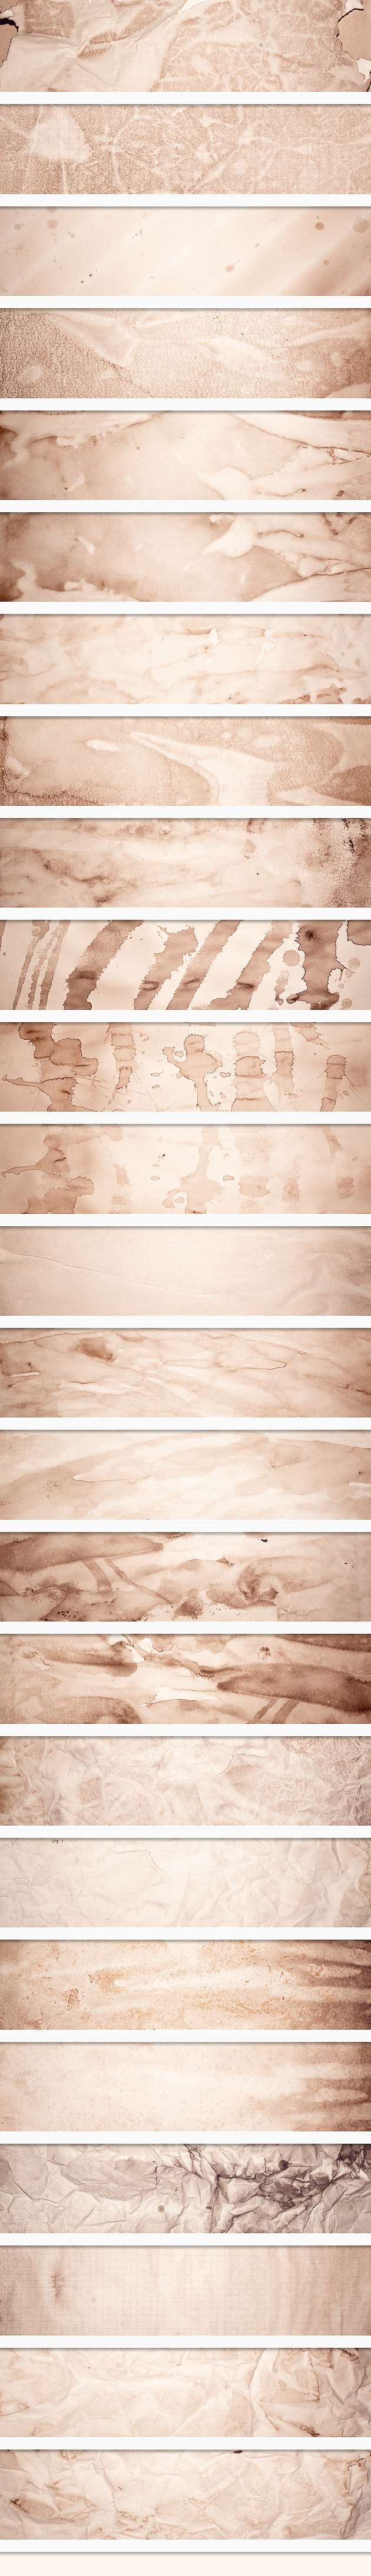 Stained Paper Textures Set 2 6